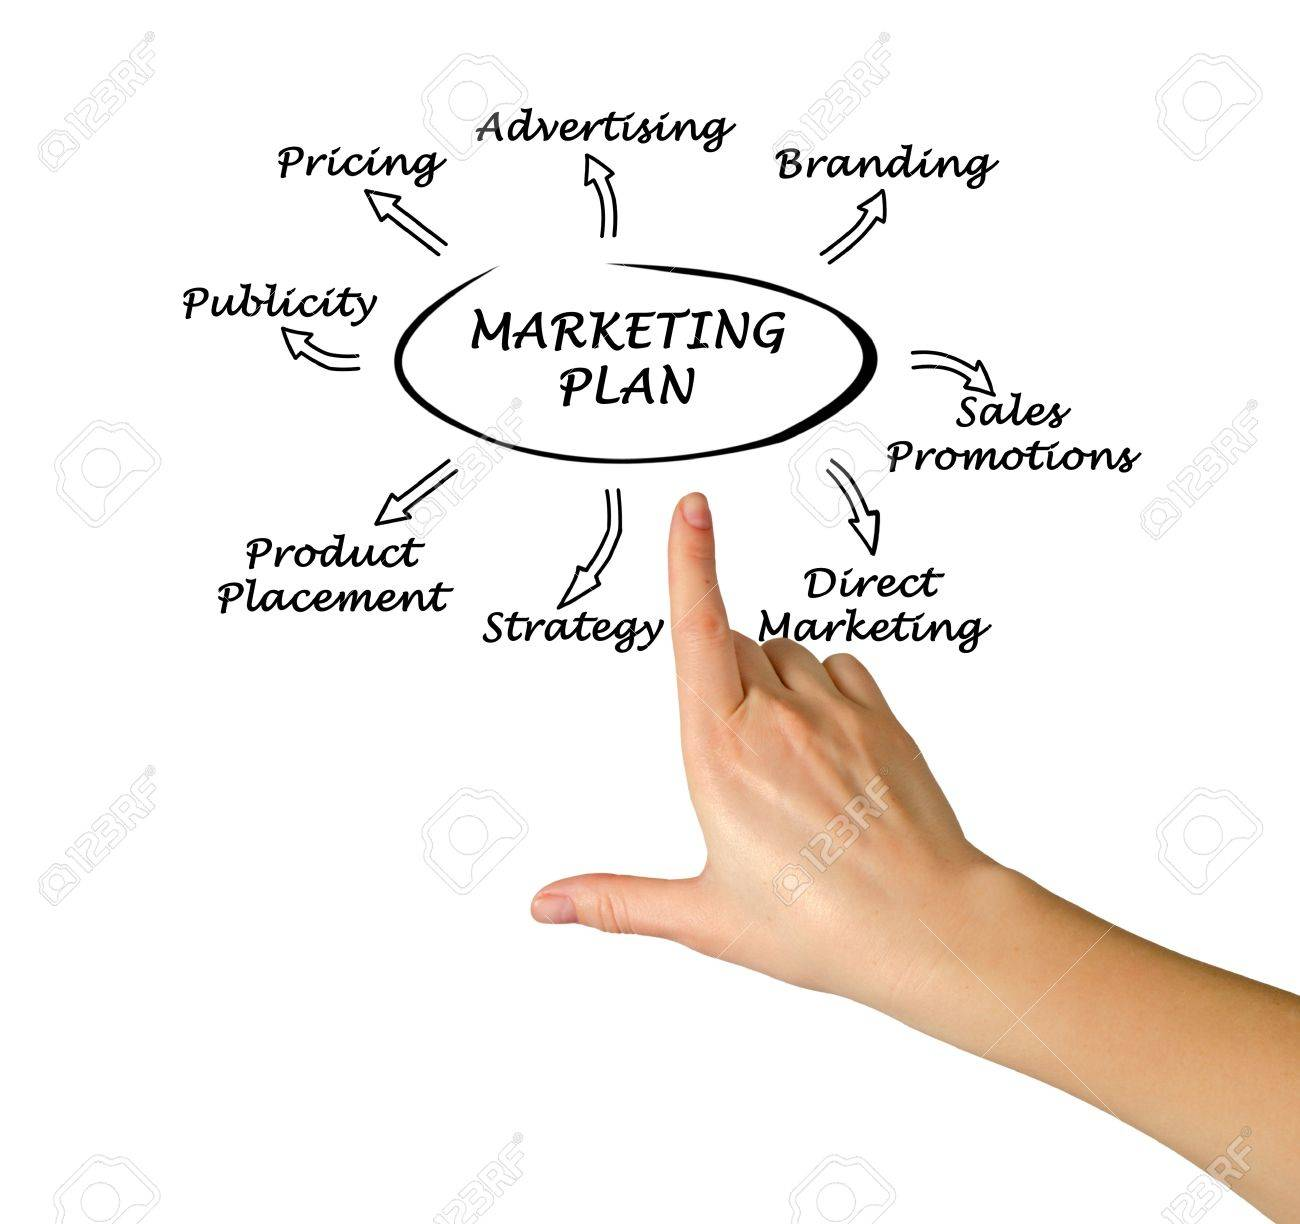 Presentation Of Marketing Plan Stock Photo, Picture And Royalty ...